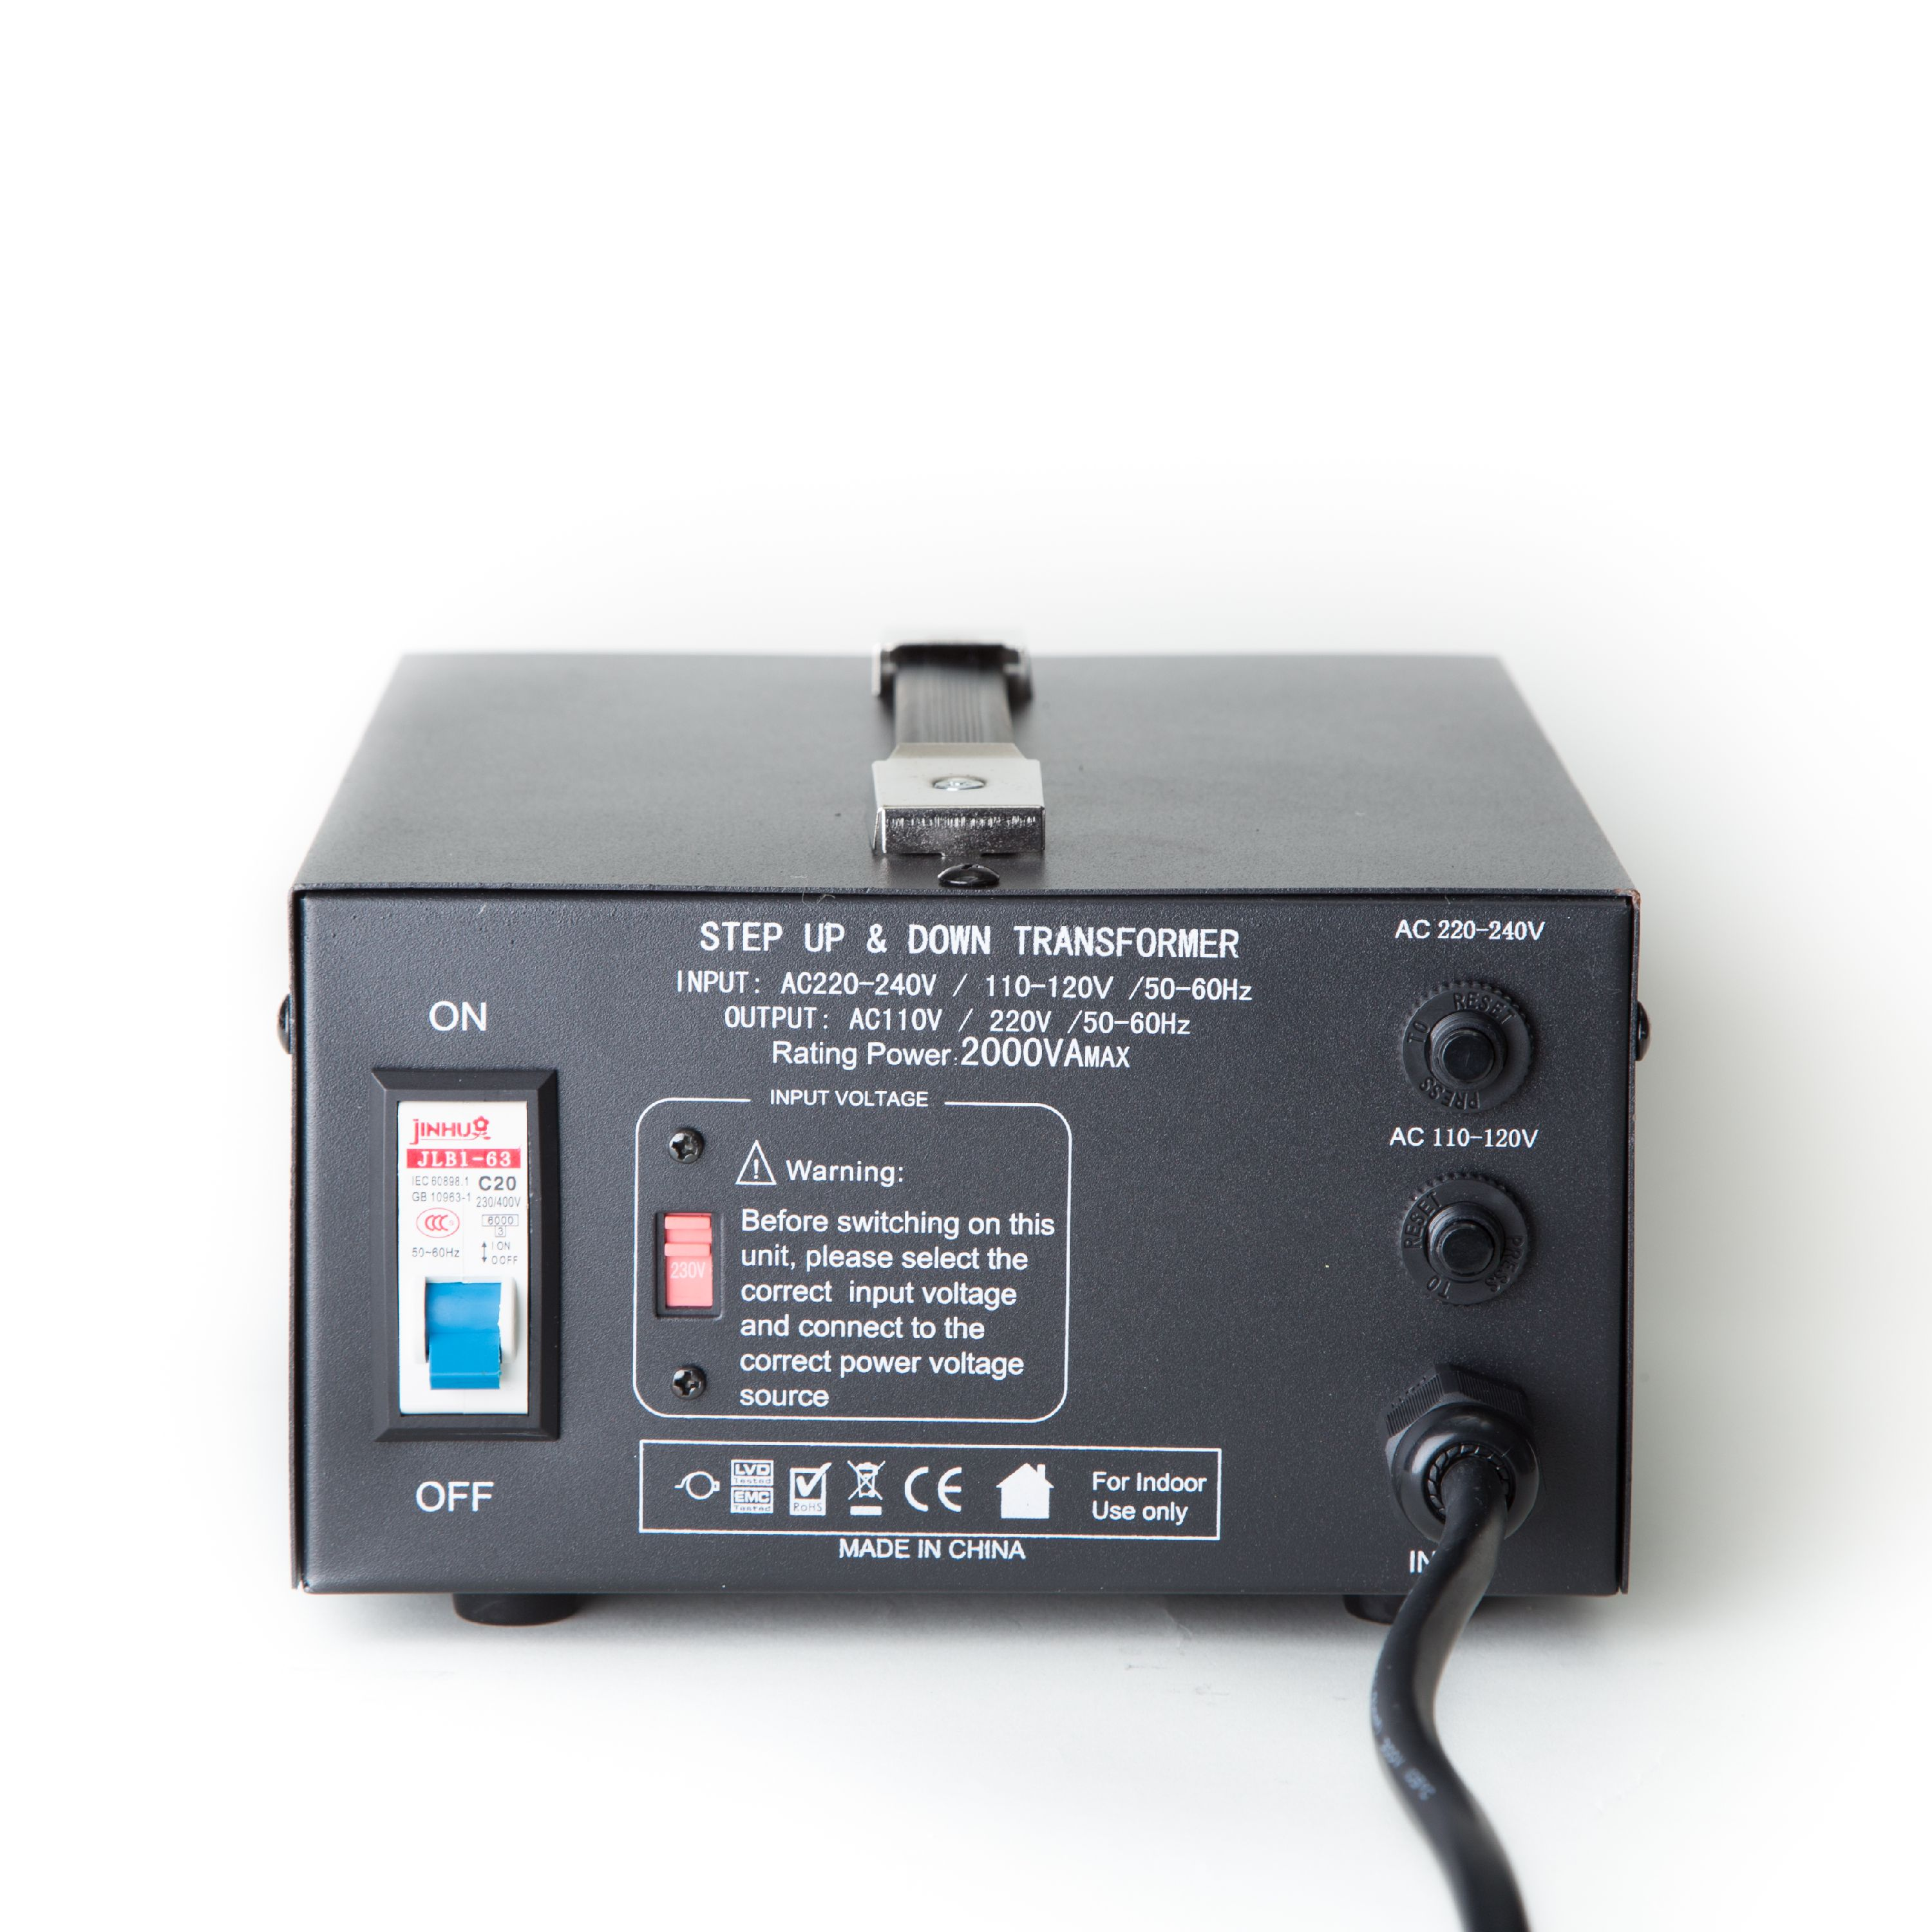 066917c4 0470 4c60 88e5 e85d4e8d3382_3.b43c1adfeee107b3b8725882eff35310 elc t 1000 1000 watt voltage converter transformer step up down  at et-consult.org